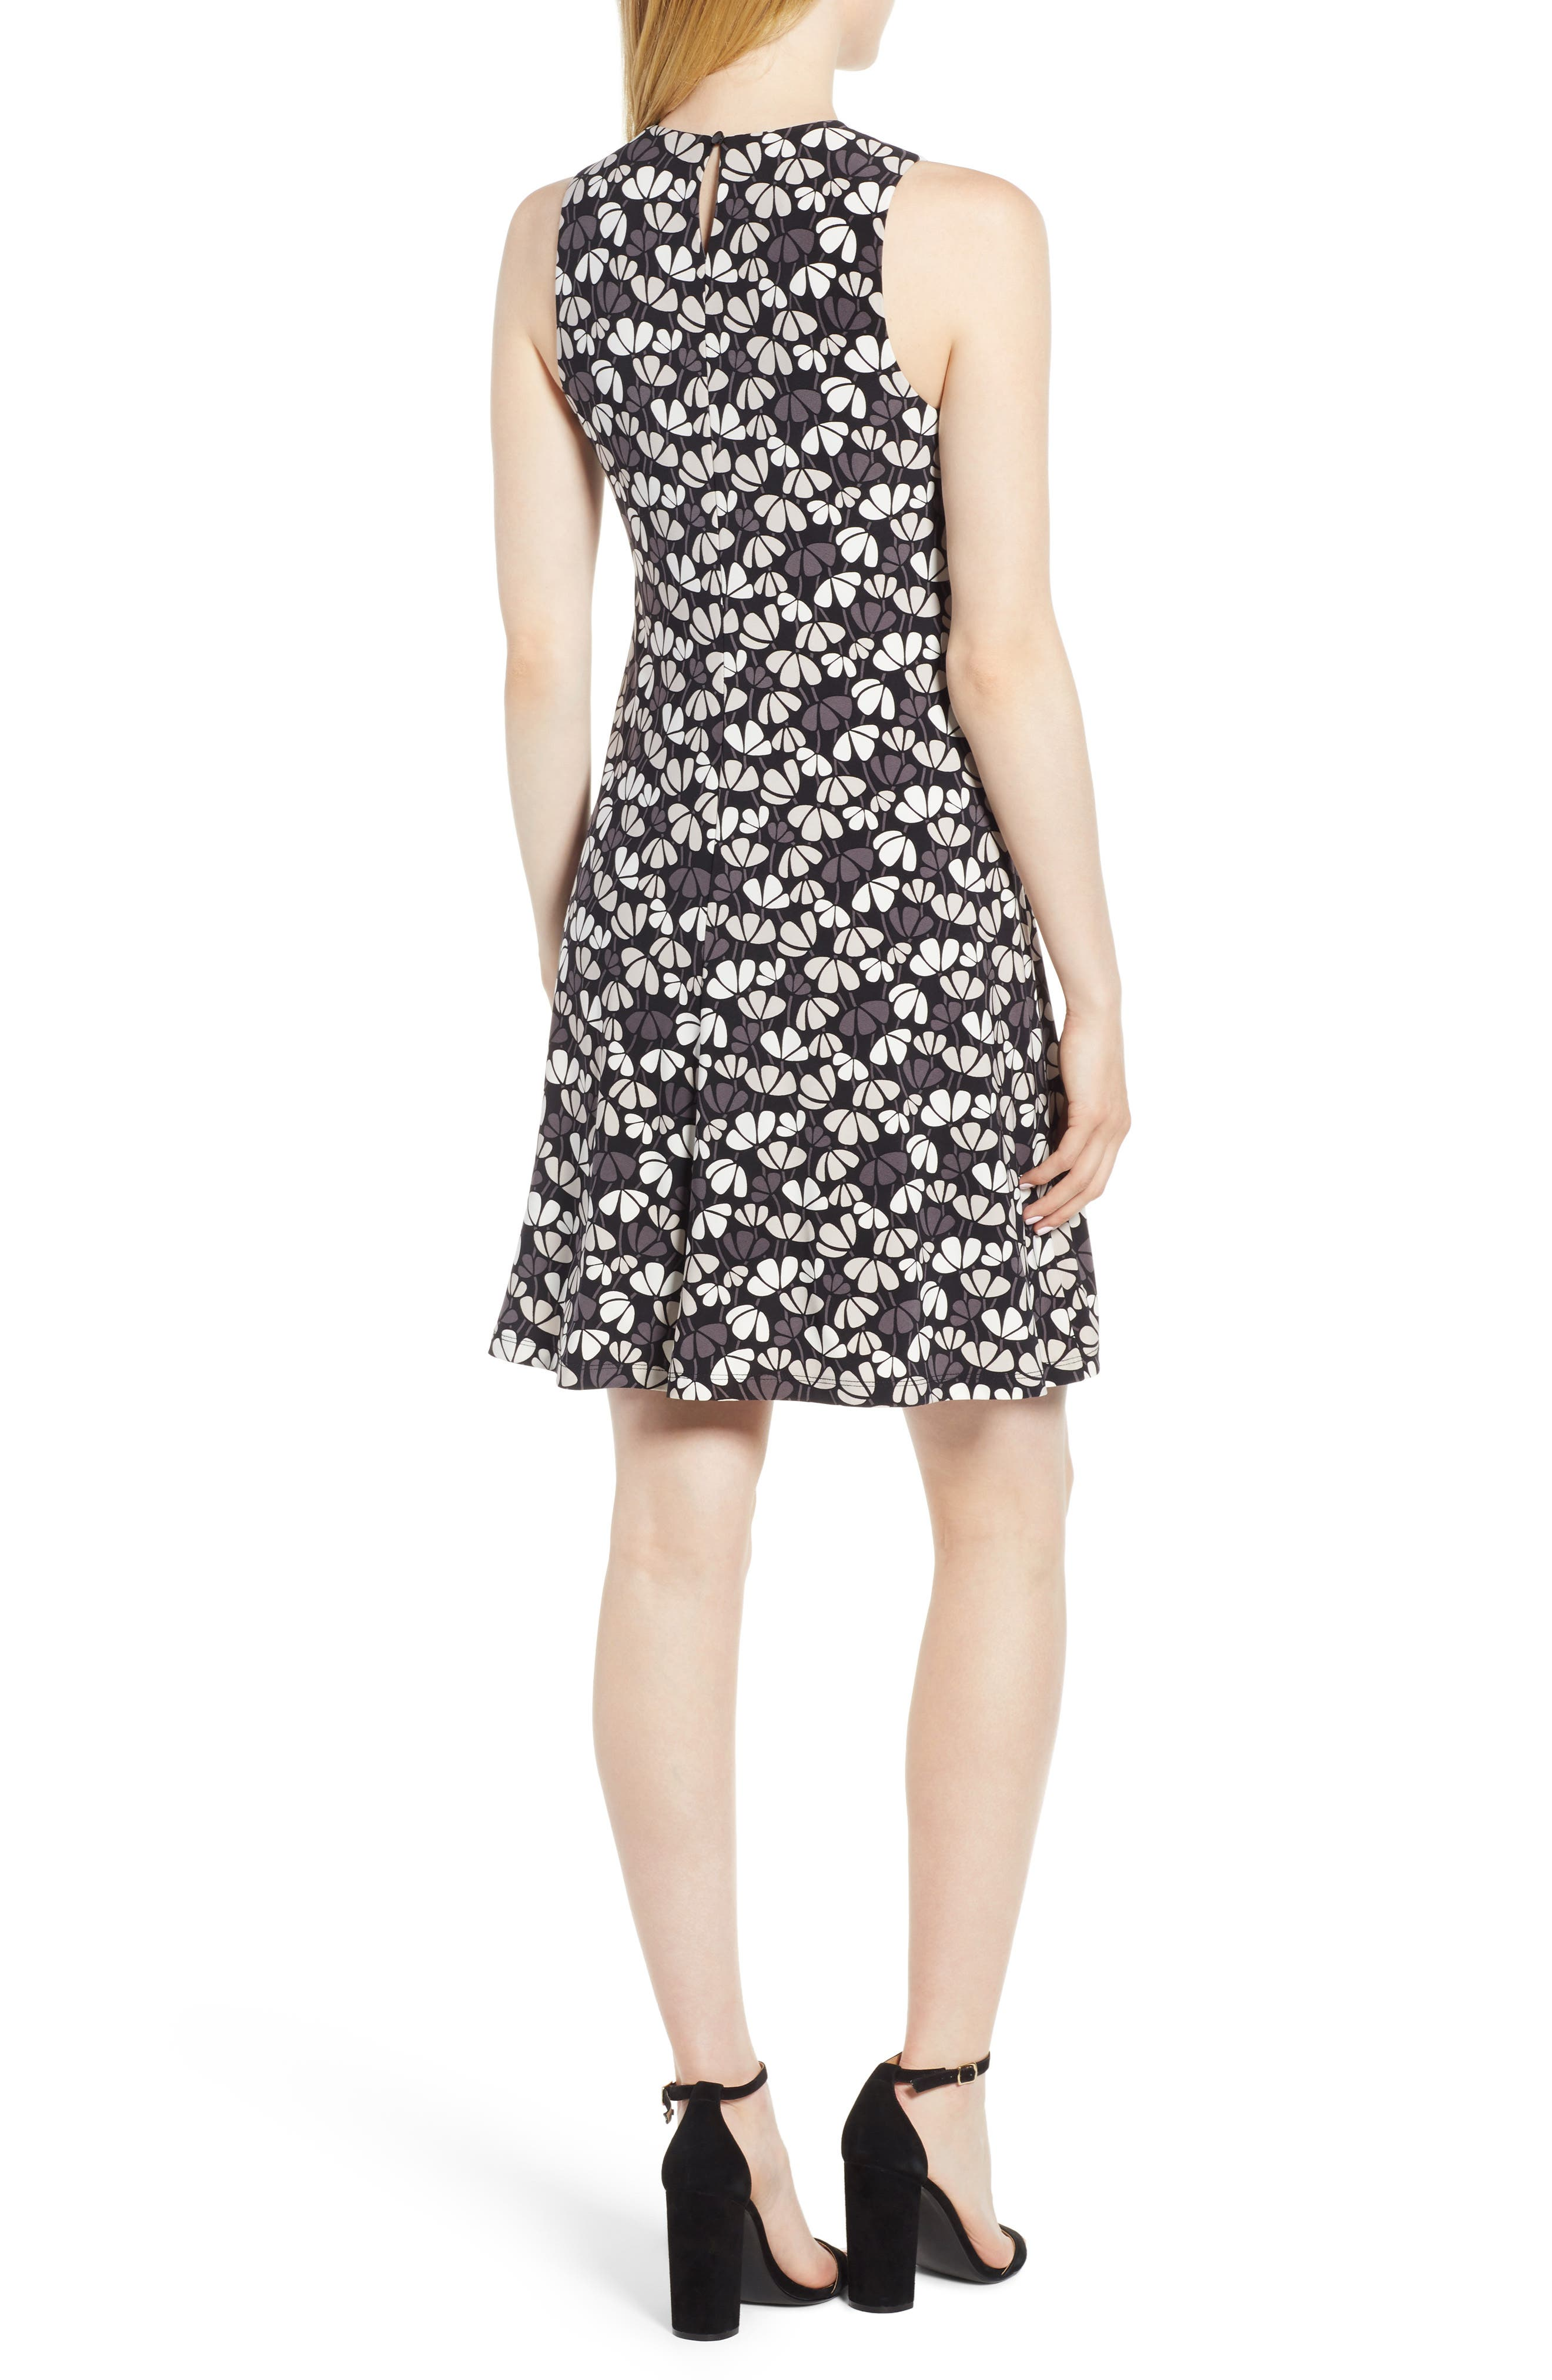 Flowerfall Stretch Knit Swing Dress,                             Alternate thumbnail 2, color,                             Black/ Oyster Shell Combo